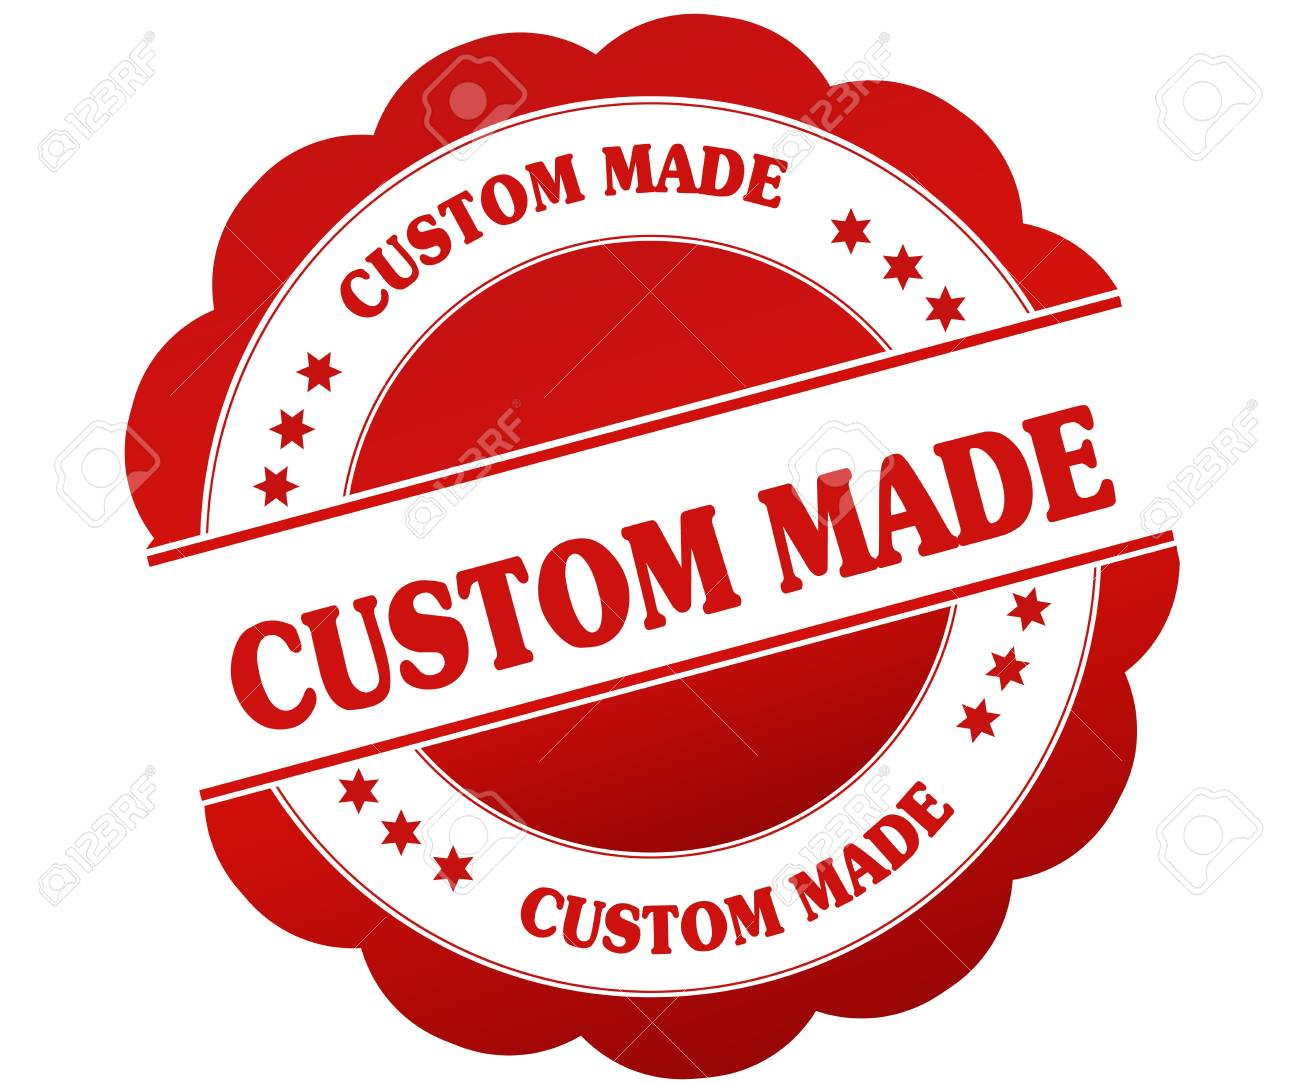 CUSTOM MADE Red Round Rubber Stamp Illustration Graphic Concept Stock